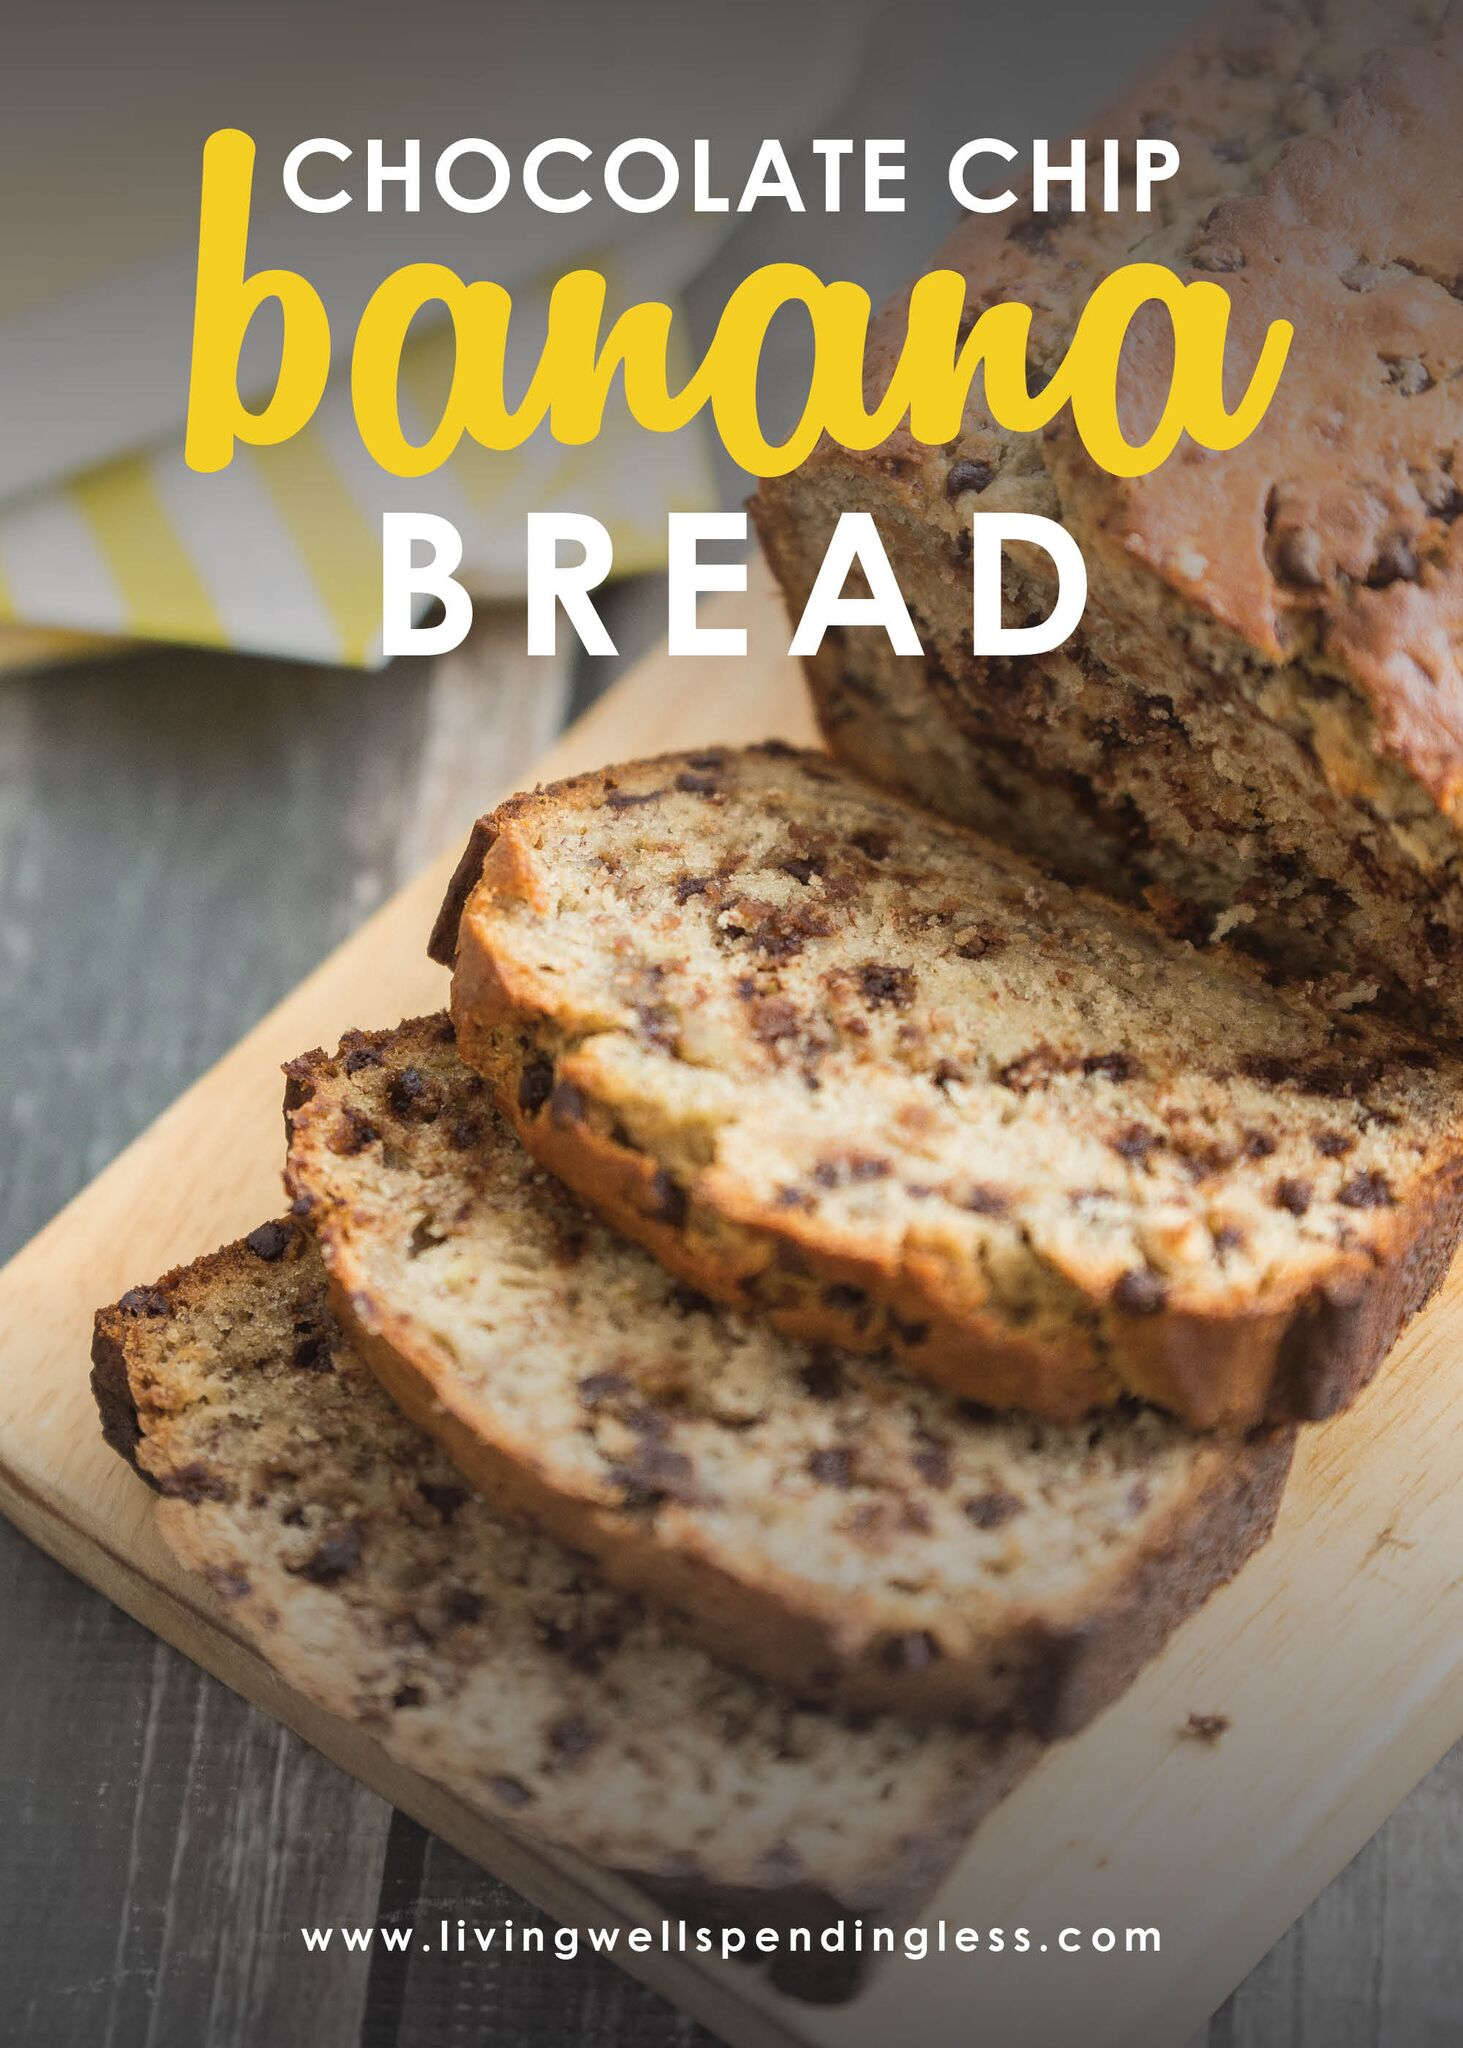 Chocolate Chip Banana Bread⎢My Husband's Secret Banana Bread Recipe⎢Brunch Recipe⎢Food Made Simple⎢Sweet Breakfast Food⎢Bananas⎢Kid Friendly Breakfast